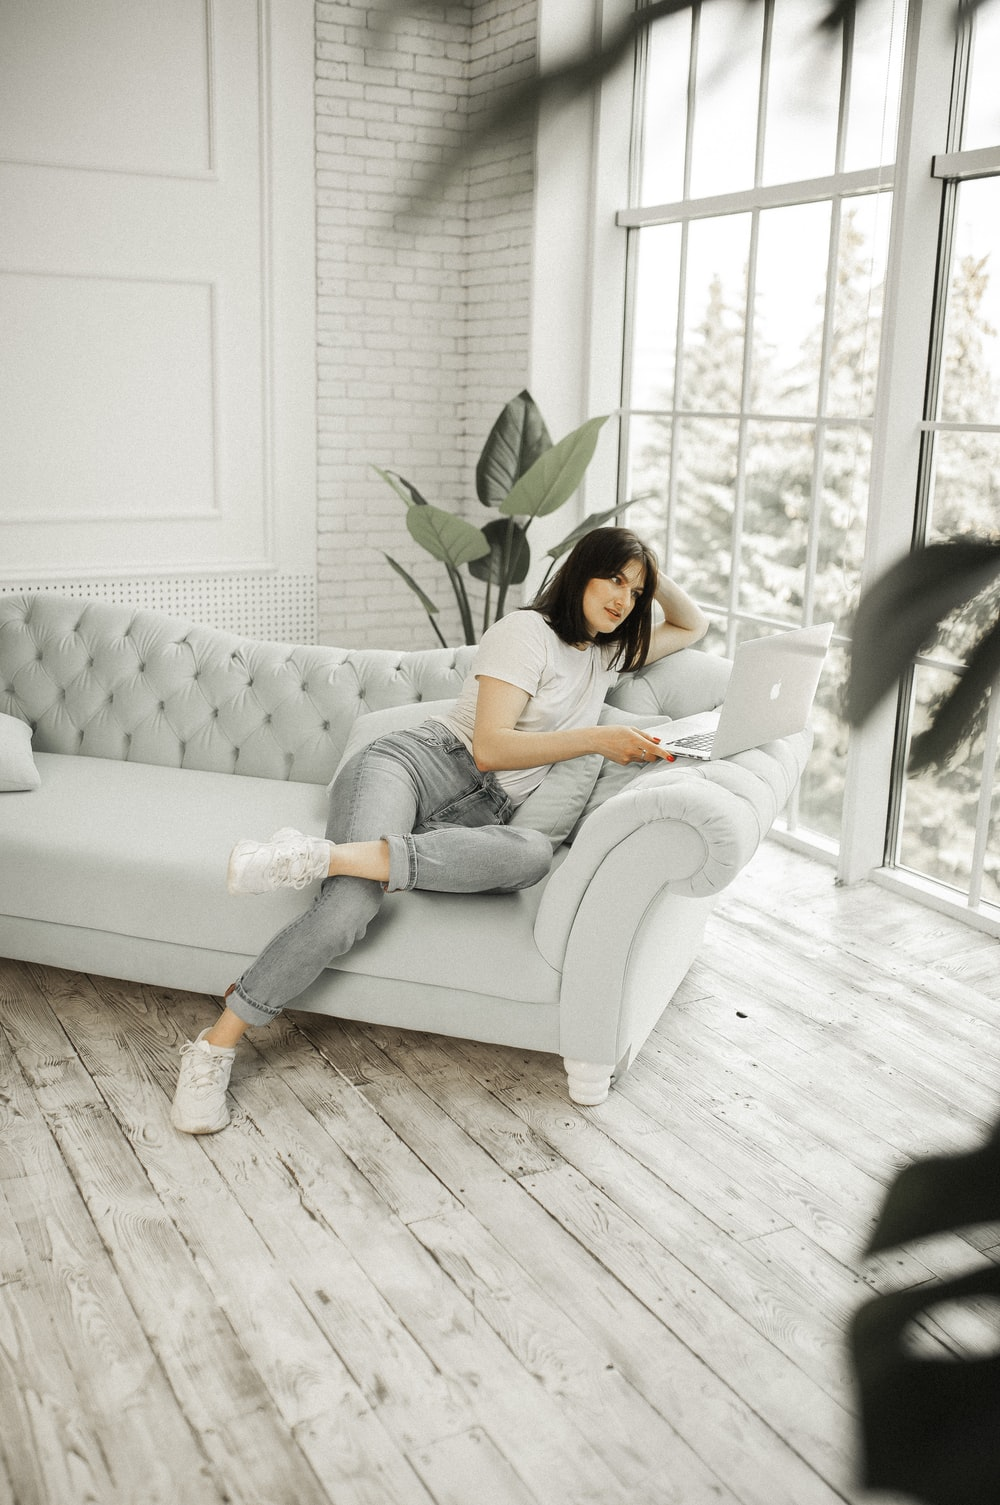 woman in white shirt and blue denim jeans sitting on white couch